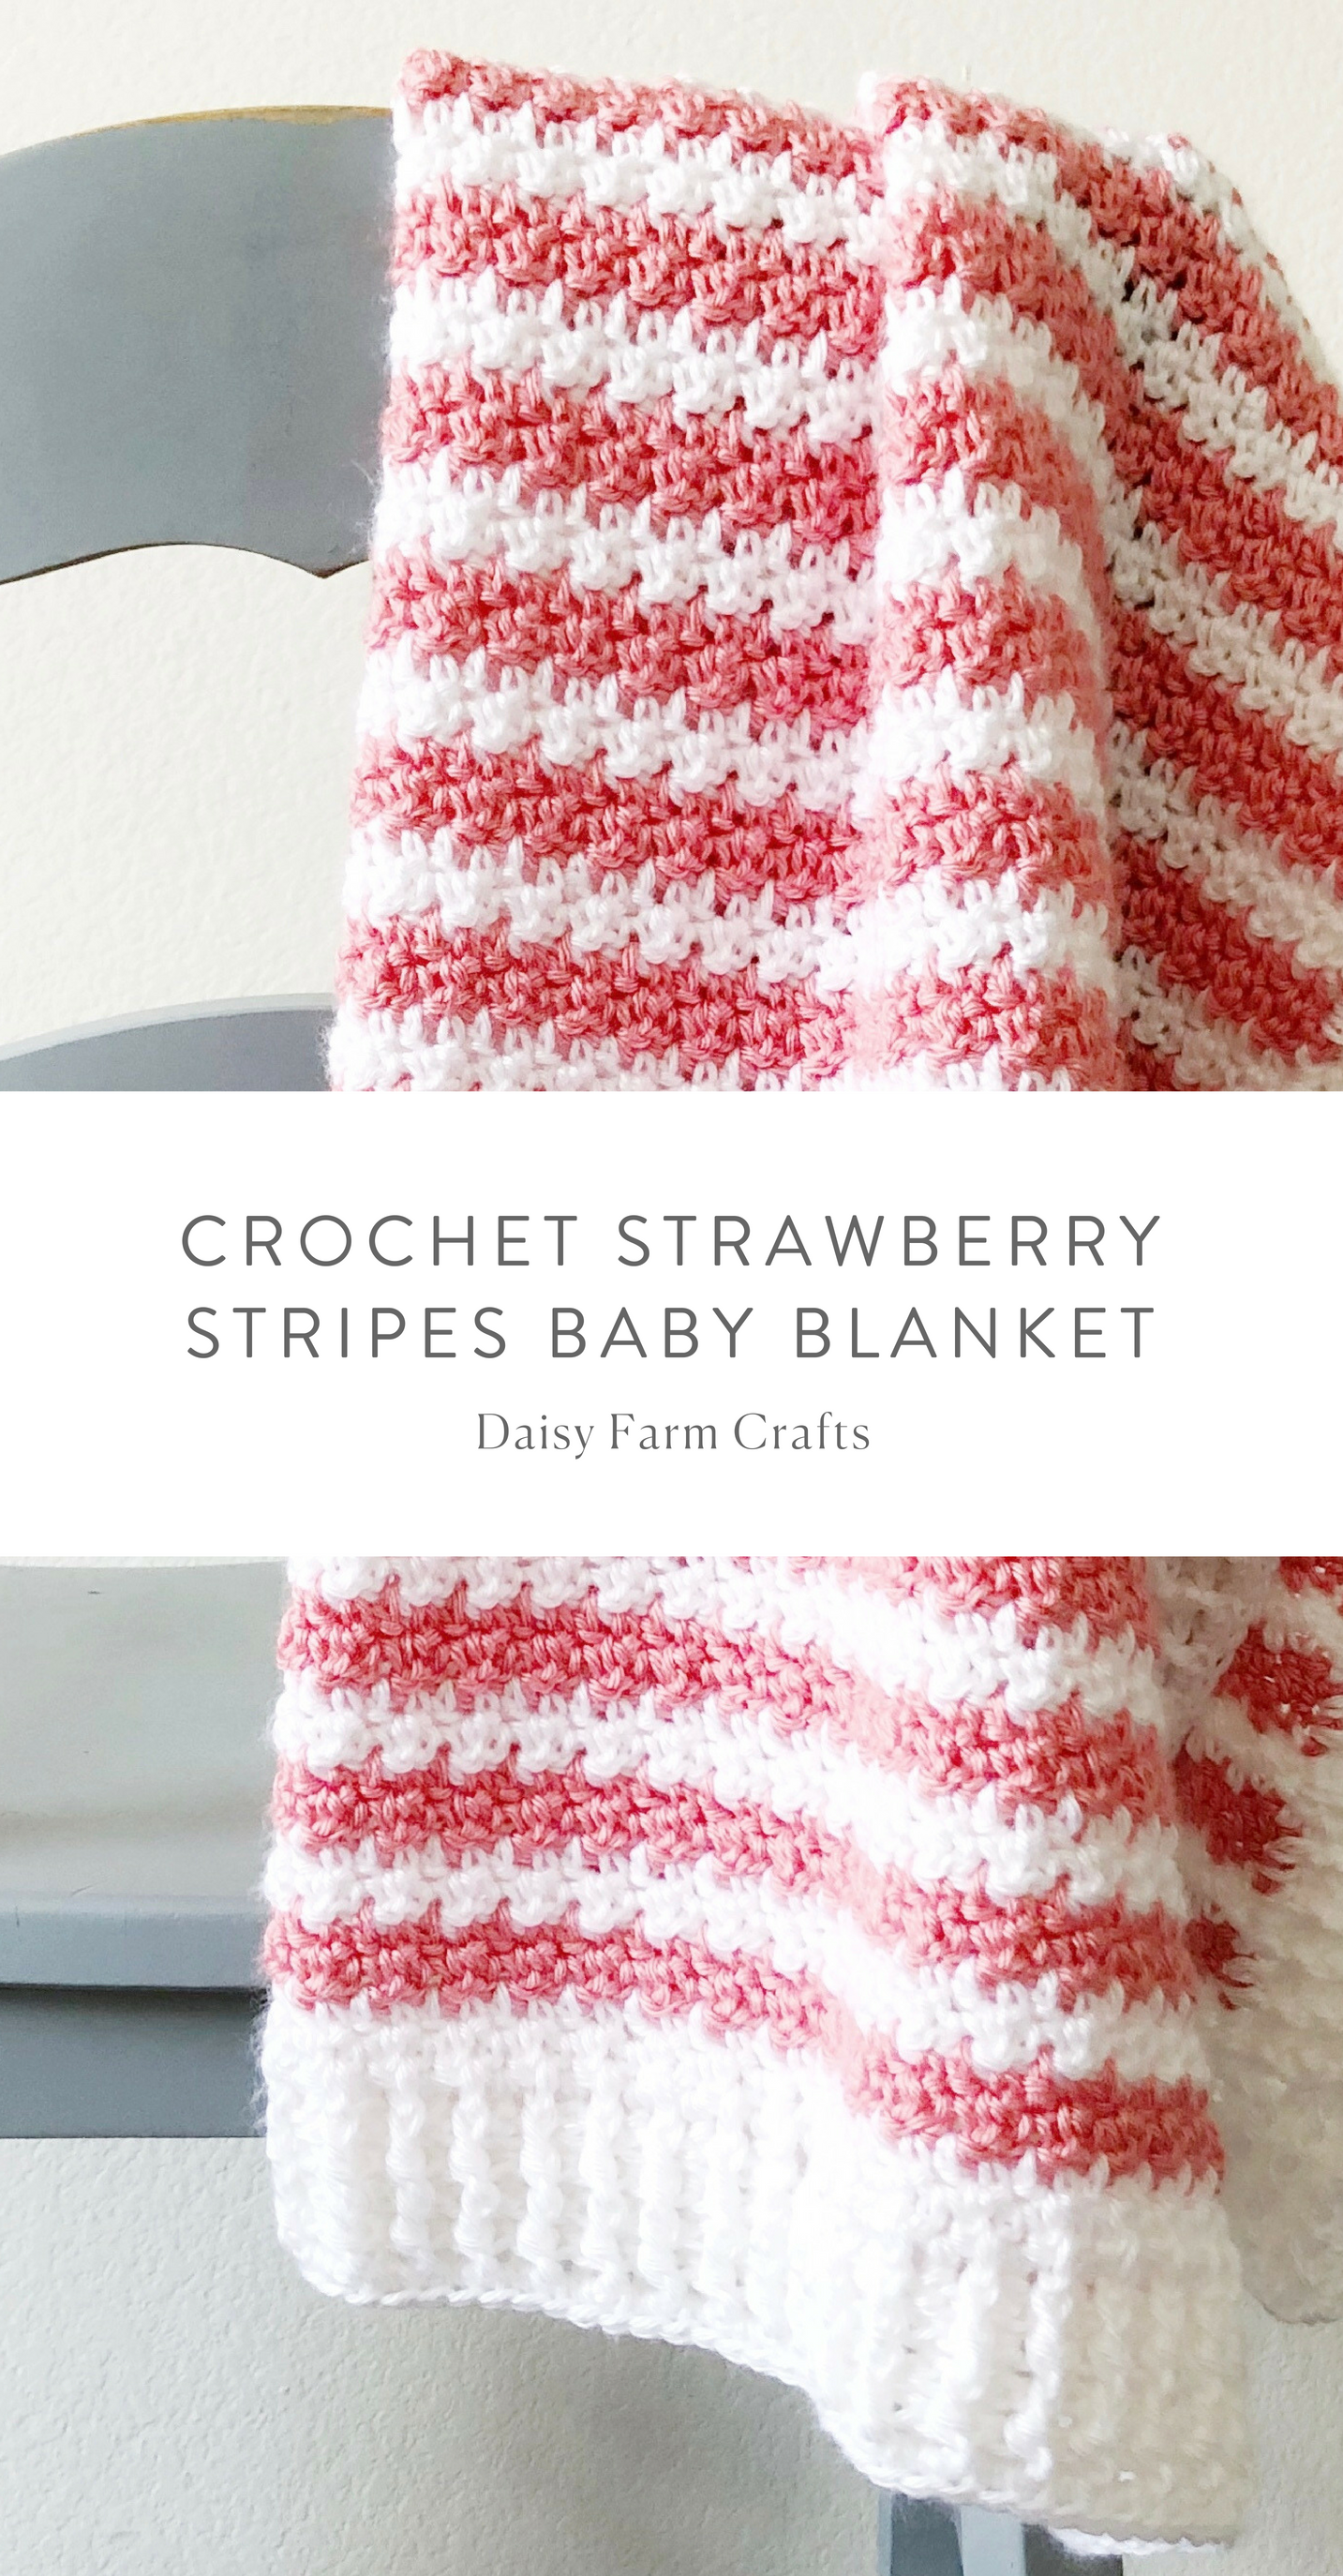 Free Pattern - Crochet Strawberry Stripes Baby Blanket #crochet ...